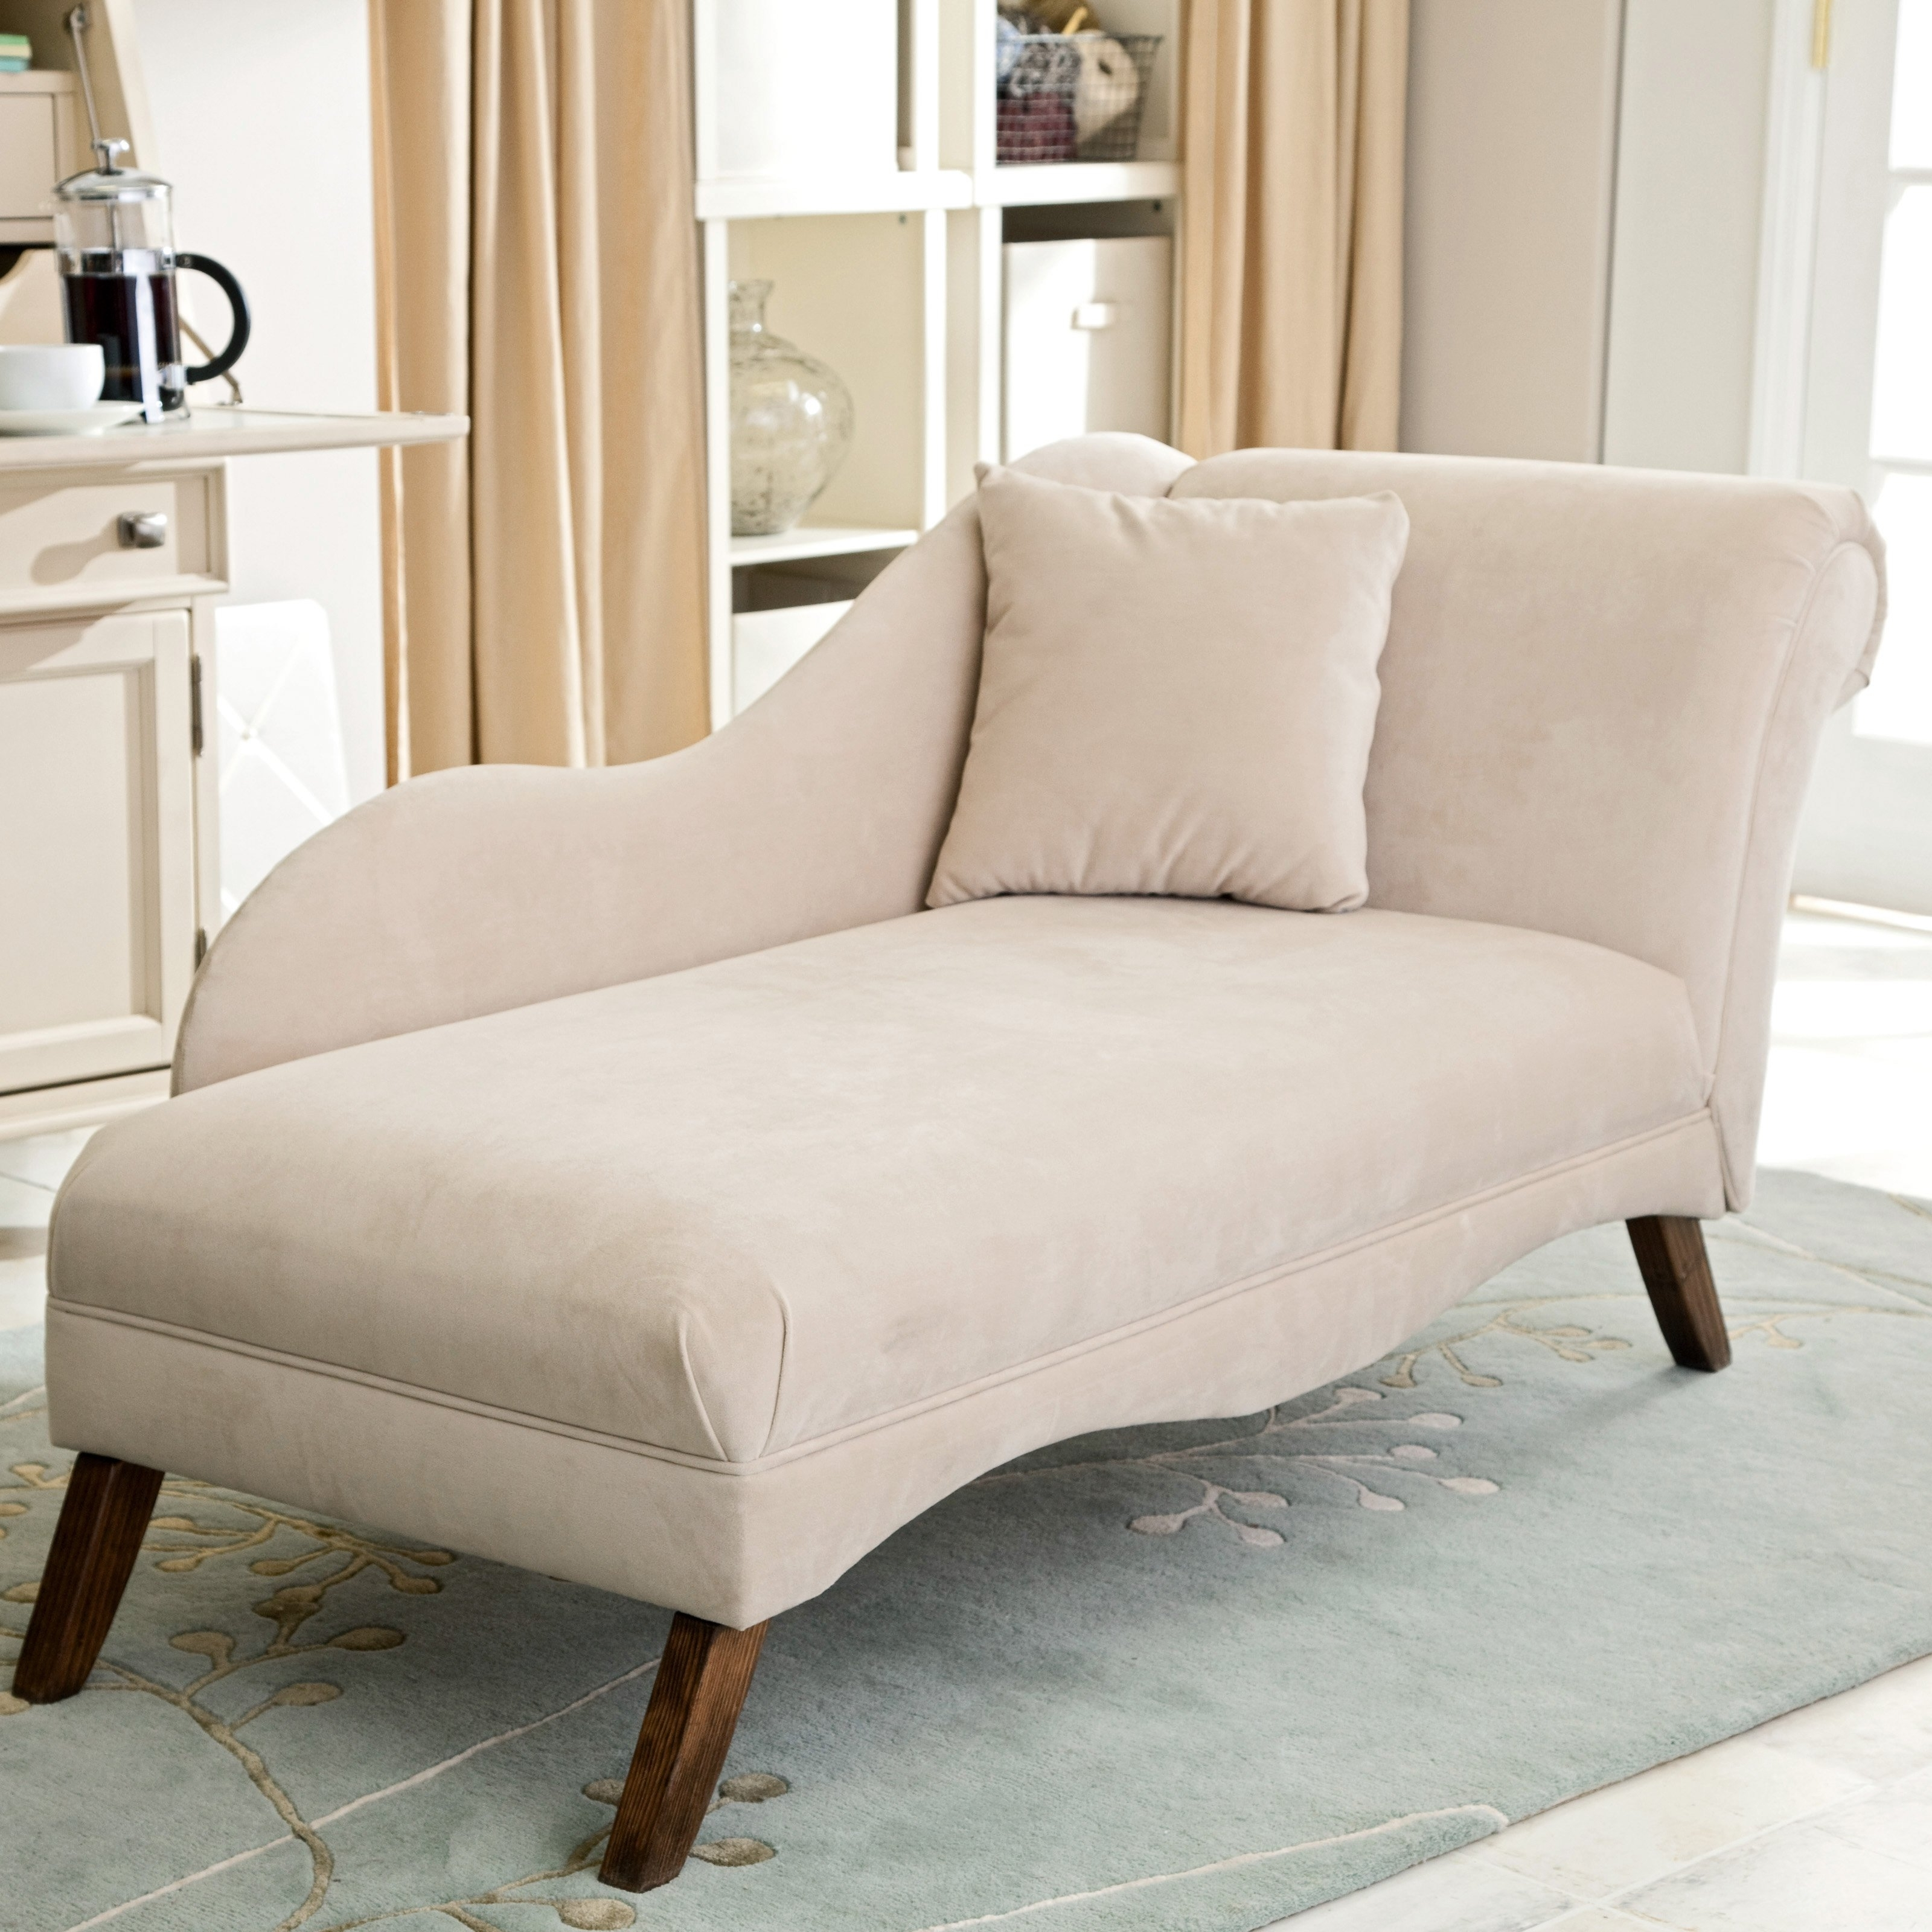 Recent Bedroom Ideas : Magnificent Table Chaise Lounge Ikea Lounge Chairs In Teenage Chaise Lounges (View 6 of 15)